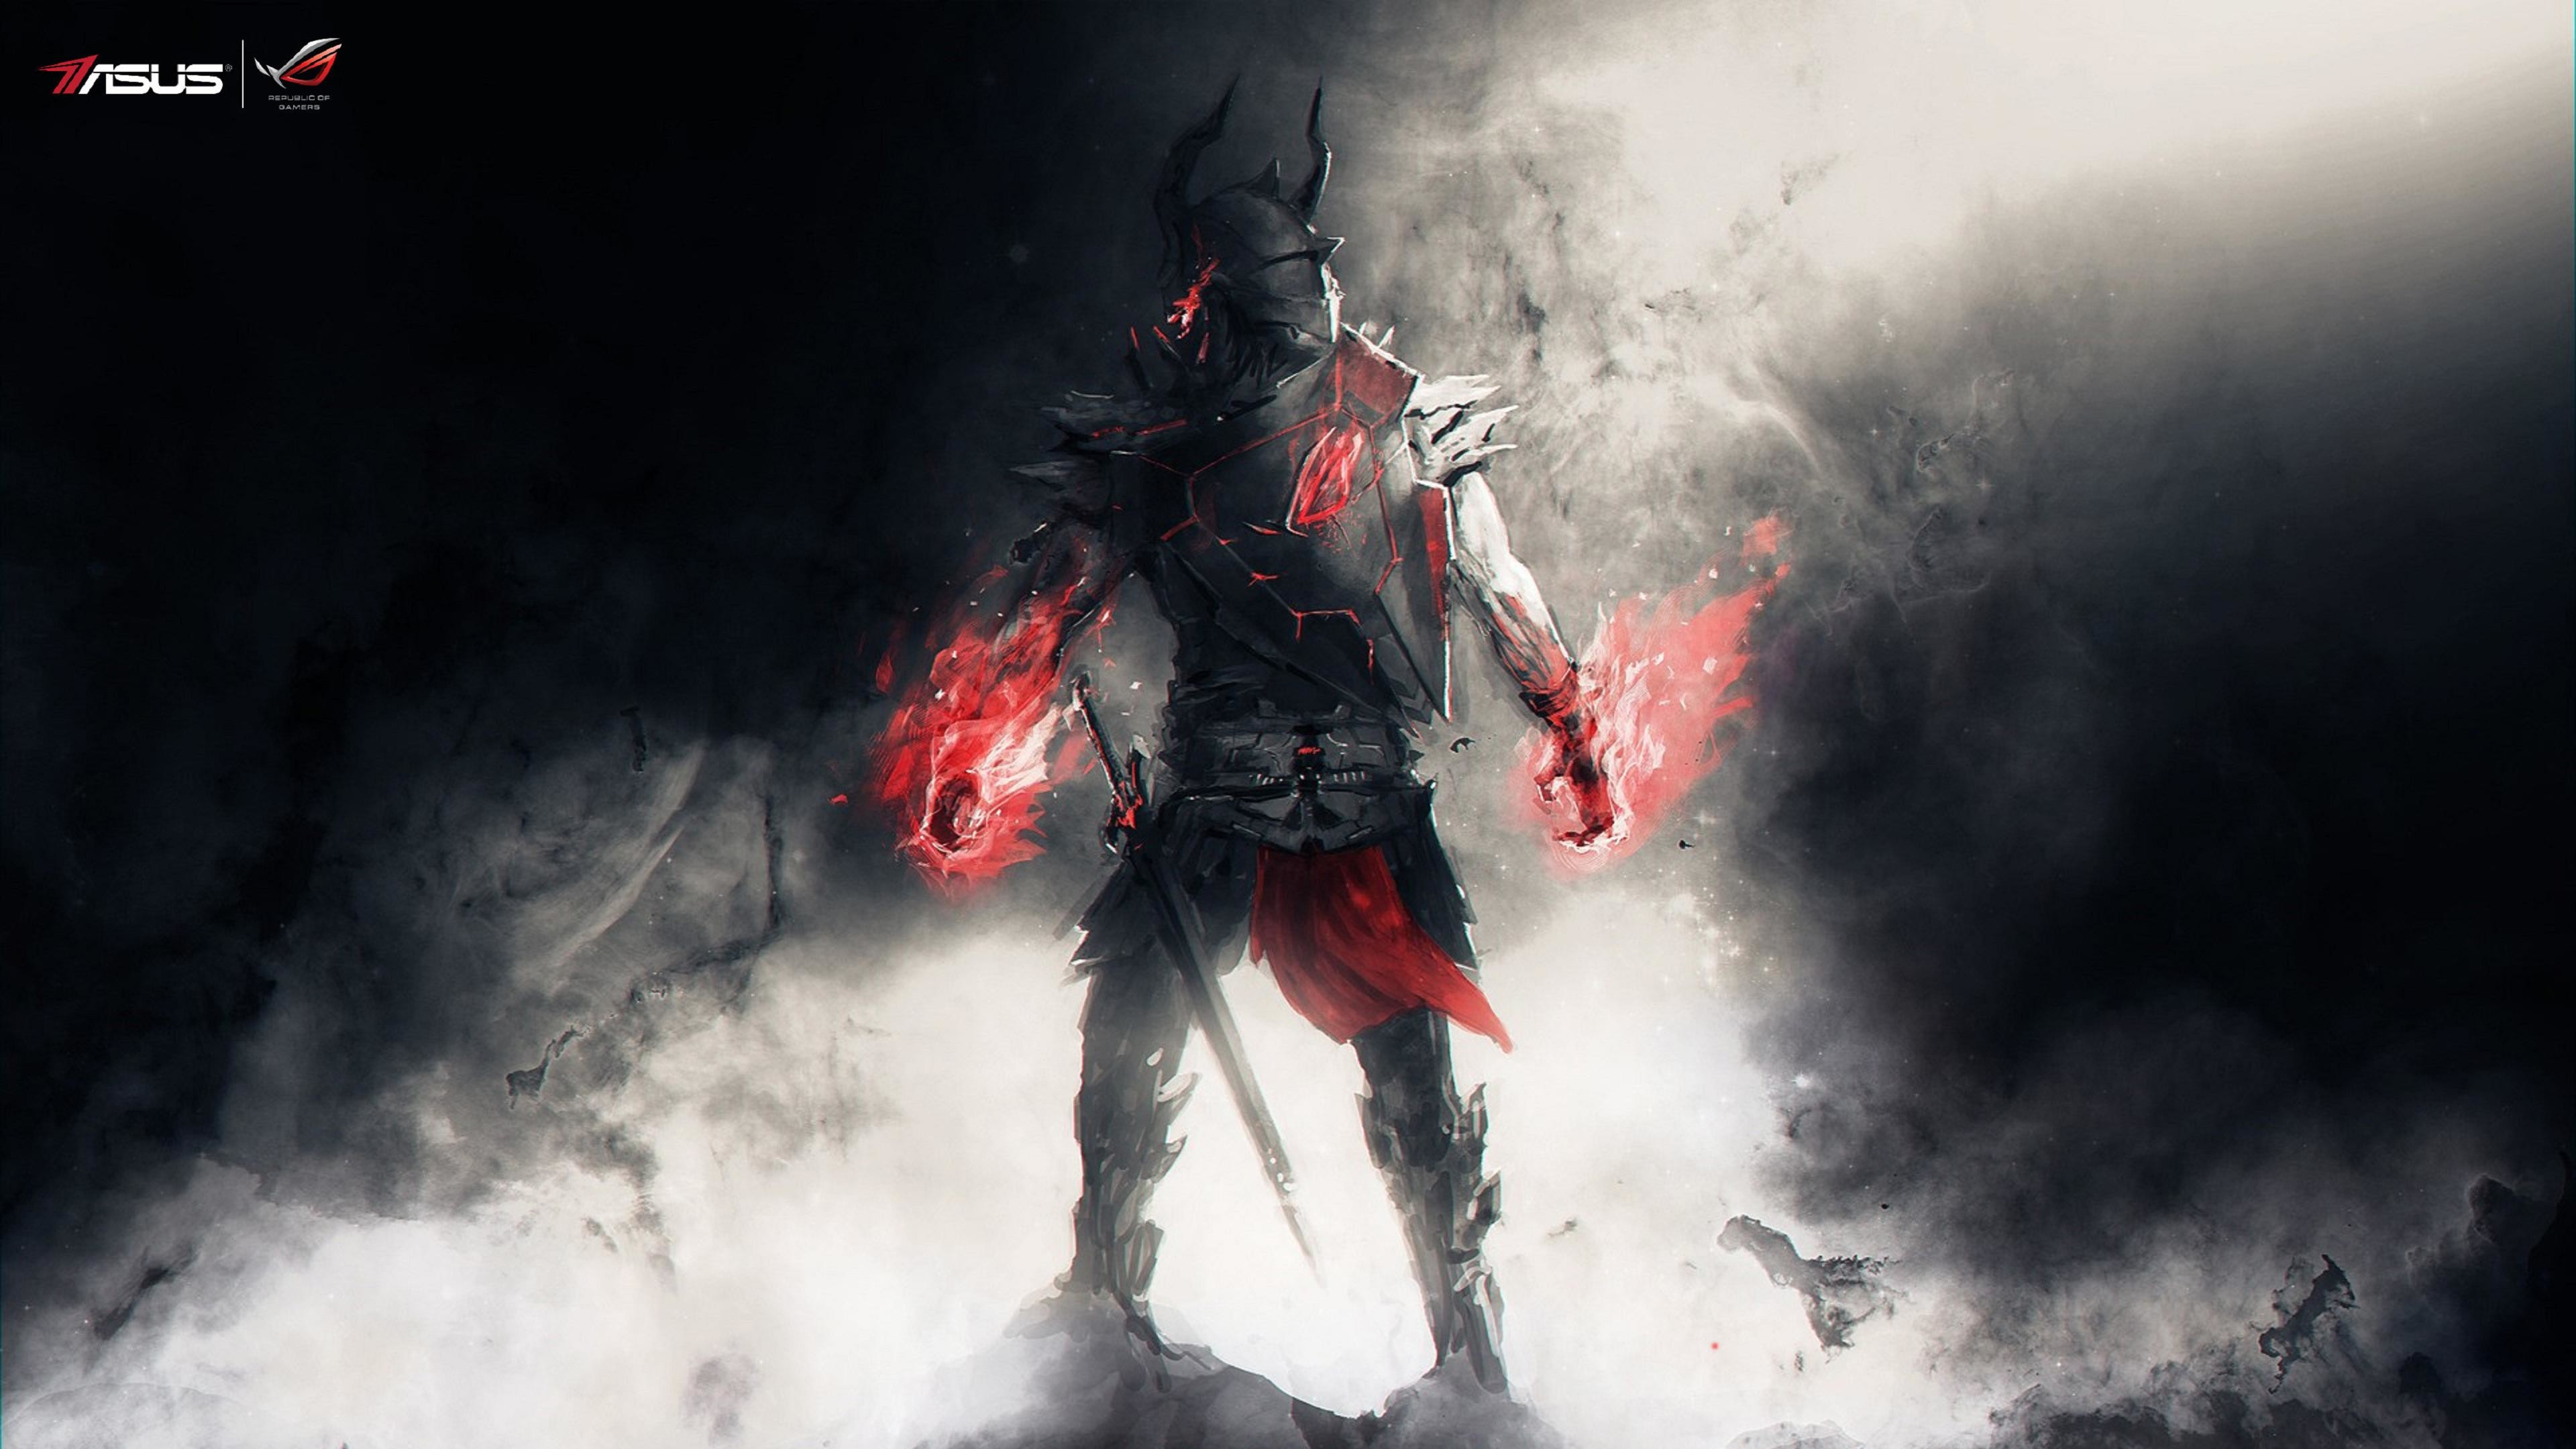 3840x2160 Best 20+ 4k gaming wallpaper ideas on Pinterest | The witcher 3 pc, Witcher  3 wild hunt and The witcher wild hunt